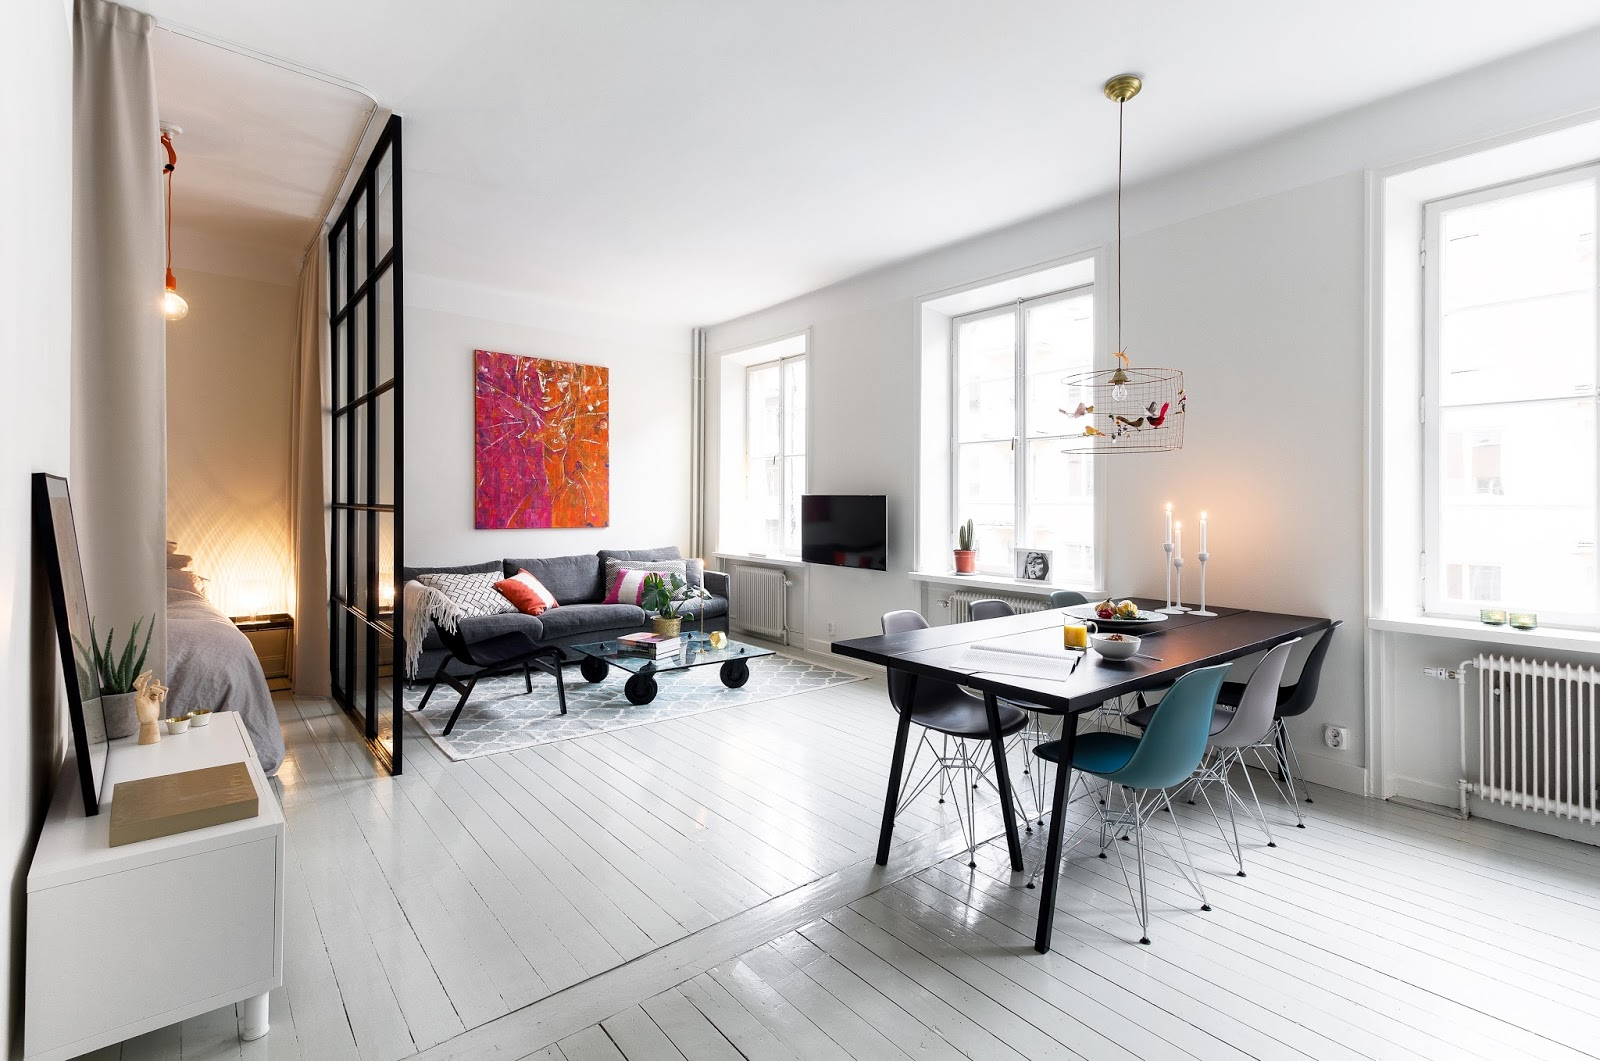 Design attractor white interior with an colorful retro accents - It Is Perfectly Balanced And Decorated Considering Its Small Size I Like The Combination Of The White Floor With Black Furniture And Nice Color Accents